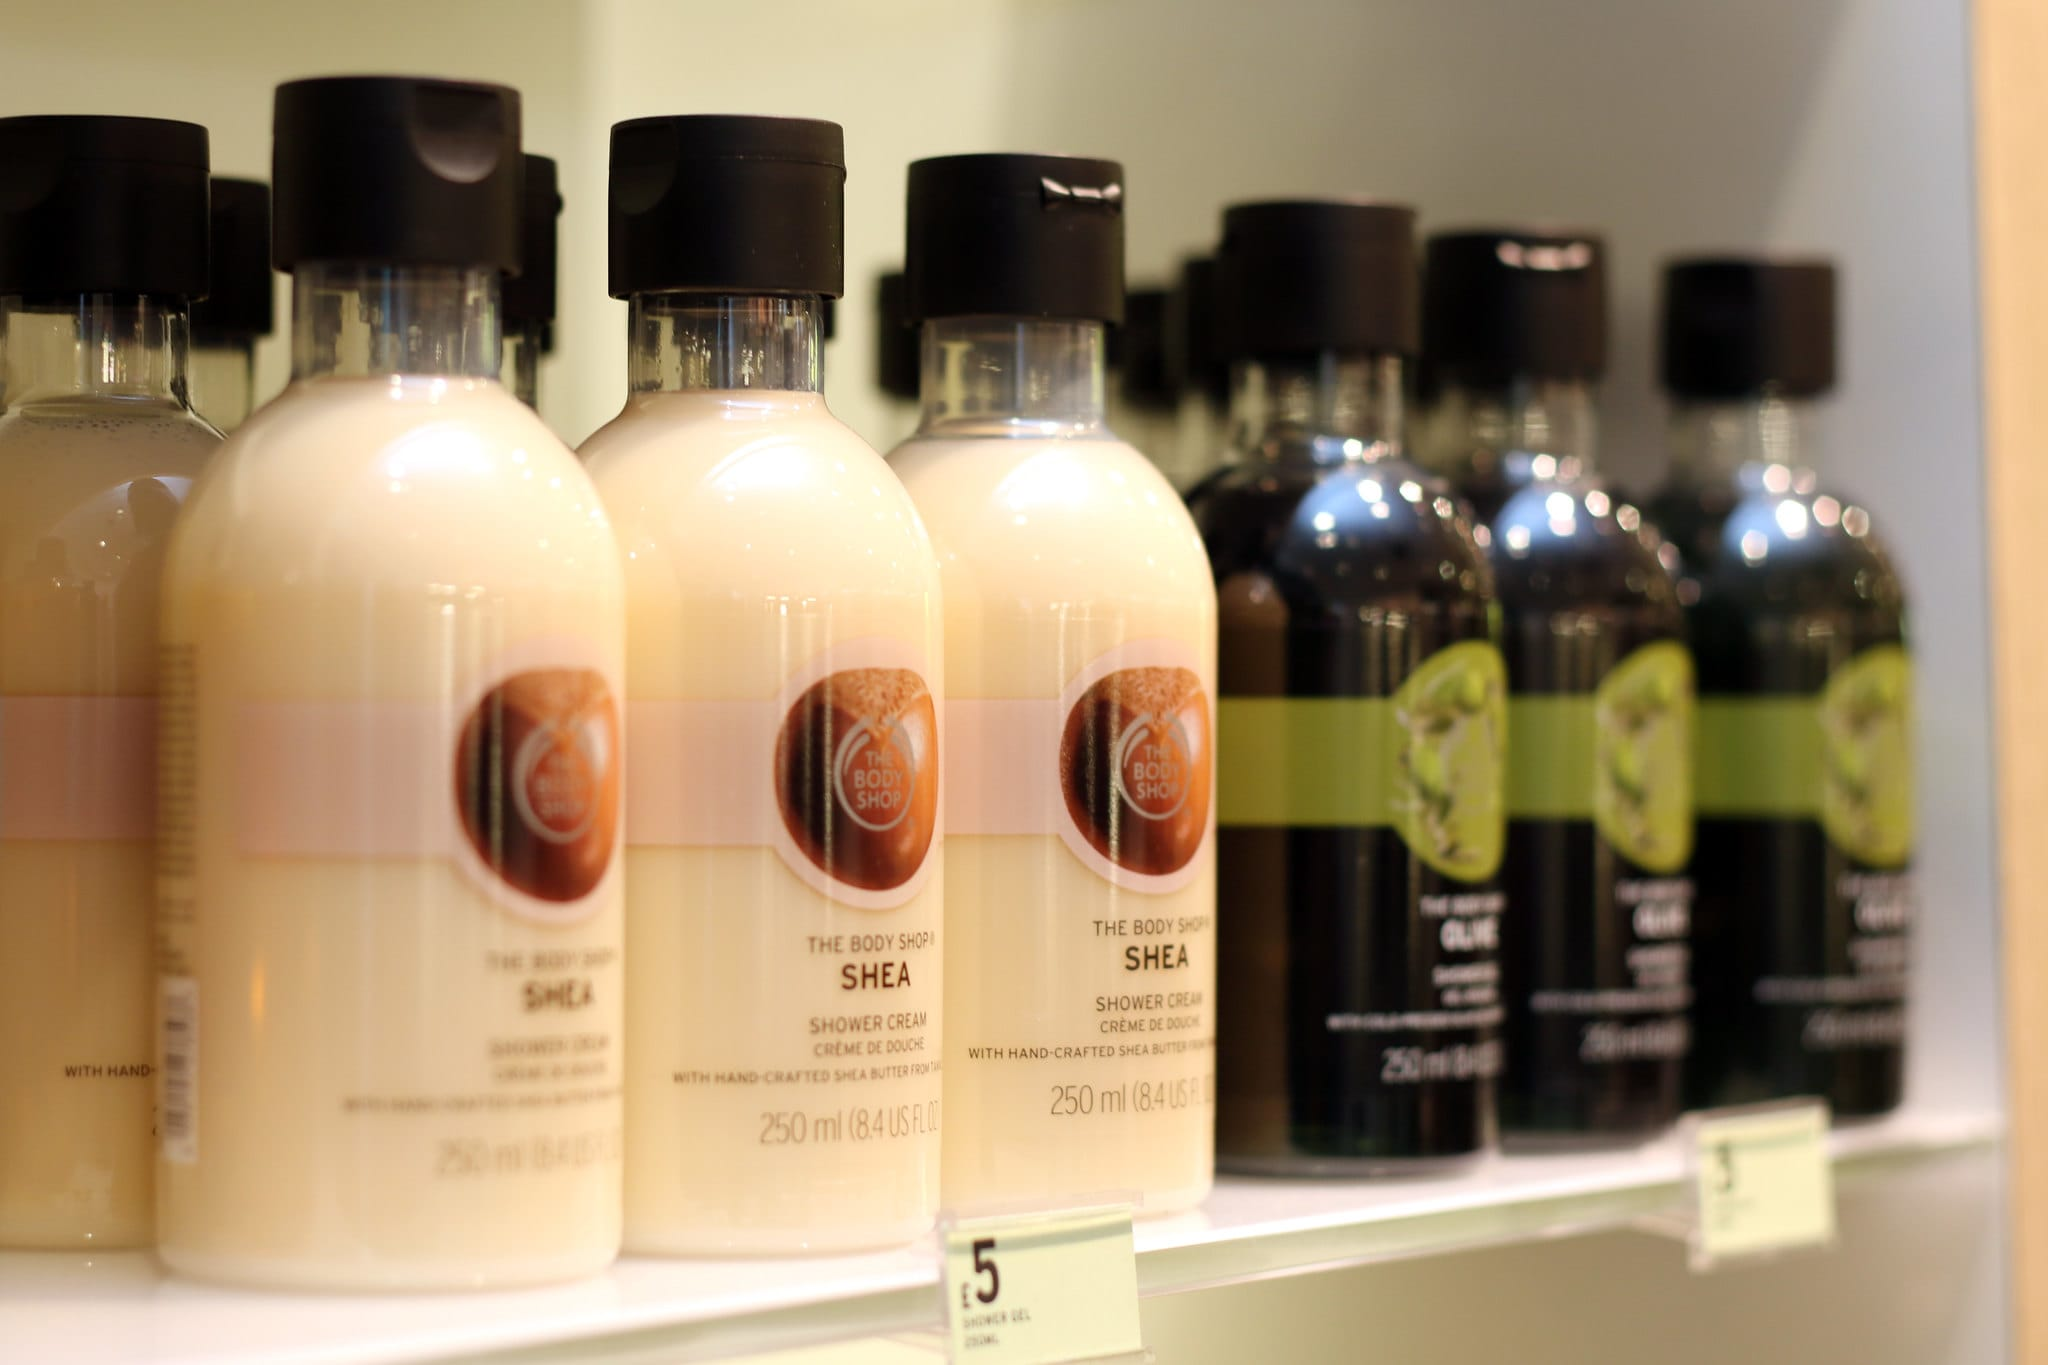 The Body Shop will buy 600 tons of waste plastic next year, and wants competitors to follow